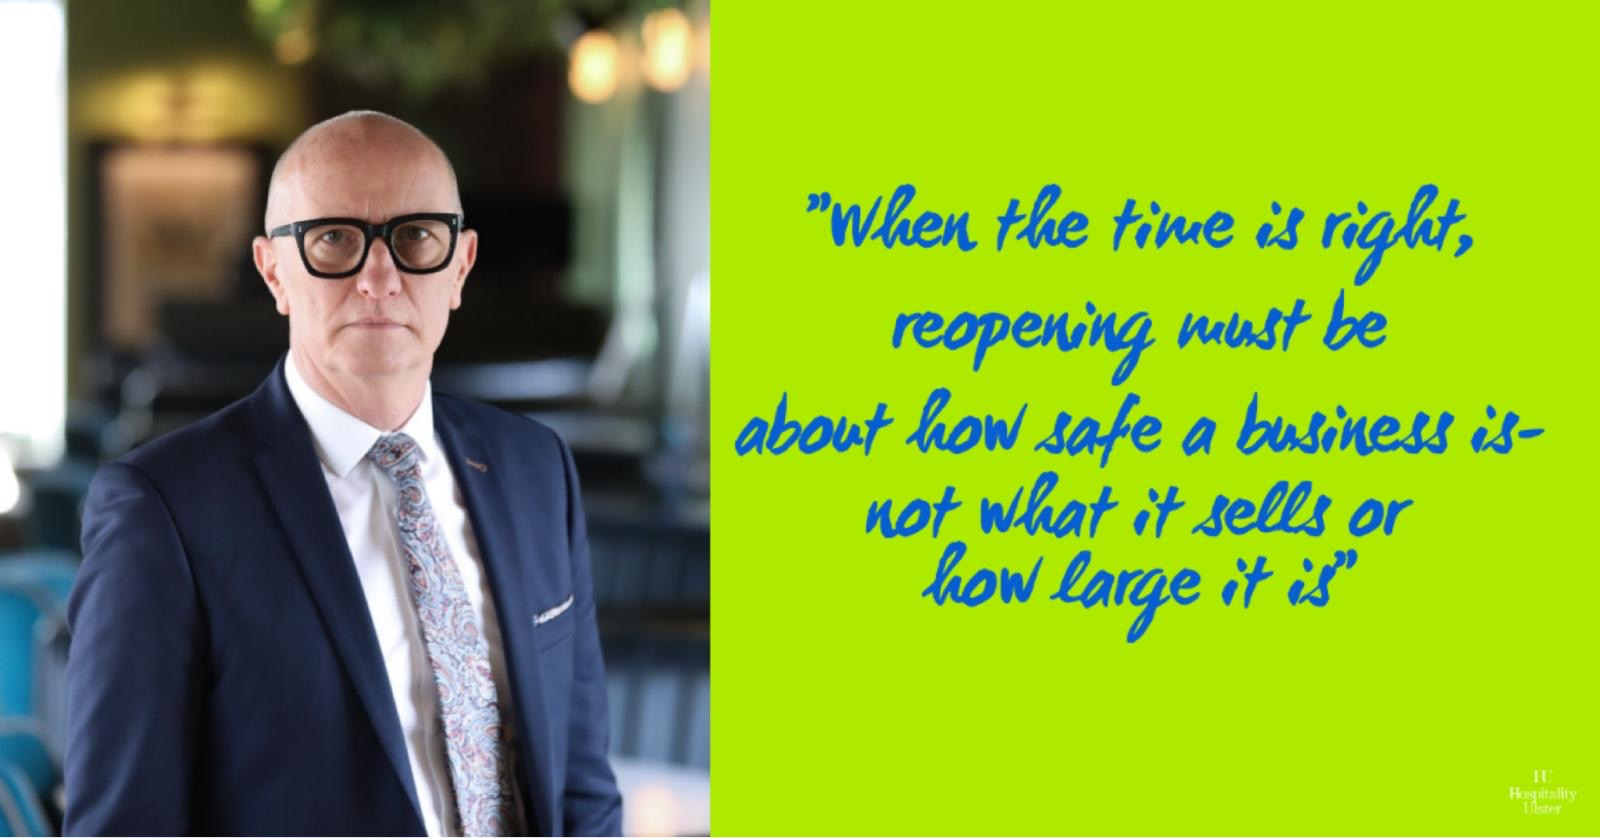 HOSPITALITY REOPENING MUST BE ABOUT SAFETY AMID CONCERN OF COMPETITIVE DISADVANTAGE TO ROI